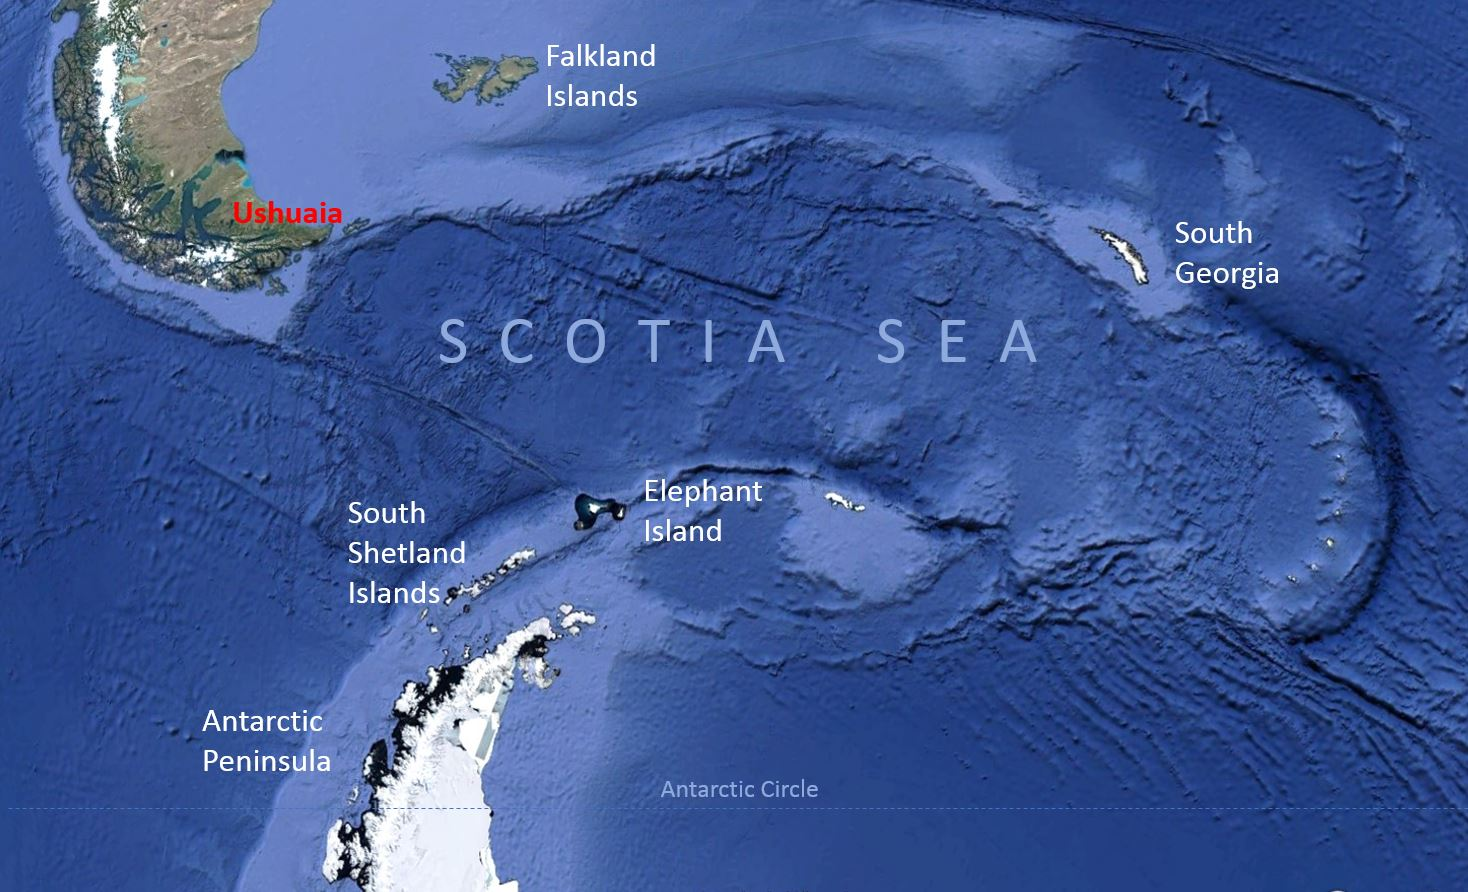 The development of the Scotia Sea (plate) gradually opened the Drake Passage between South America and Antarctica beginning approximately 30-40 million years ago, allowing the formation of the Antarctic Circumpolar Current, thereby isolating the southern icy continent from warmer ocean waters.